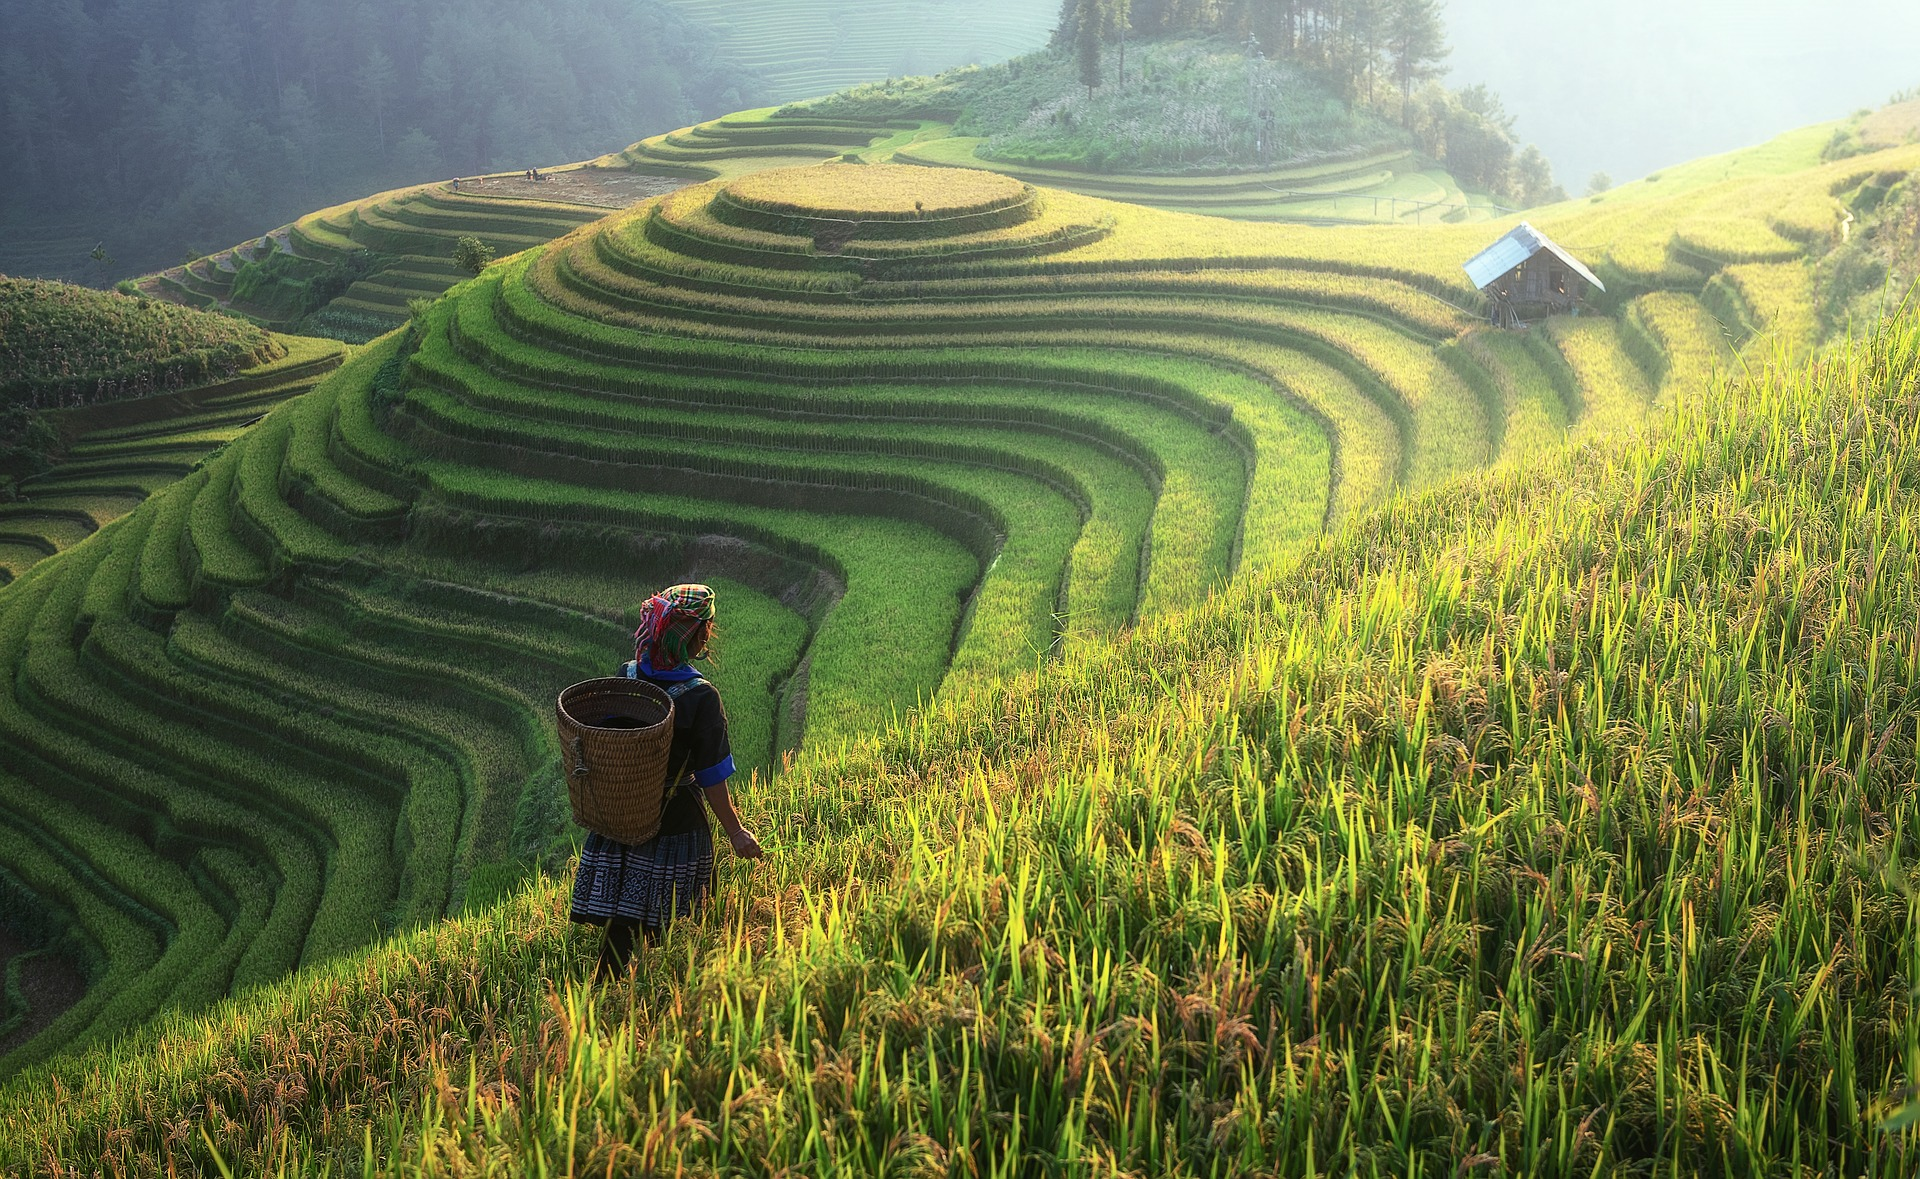 Rice plantation on the hill photo